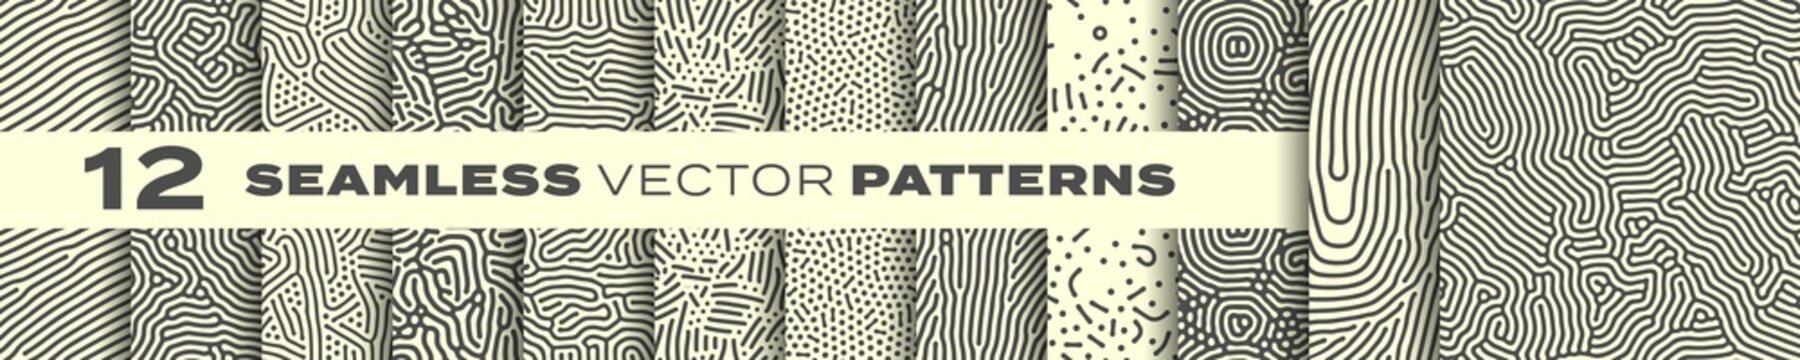 Abstract organic lines seamless patterns vector backgrounds set. Modern trendy creative memphis and biological patterns with dots and irregular squiggle lines texture design